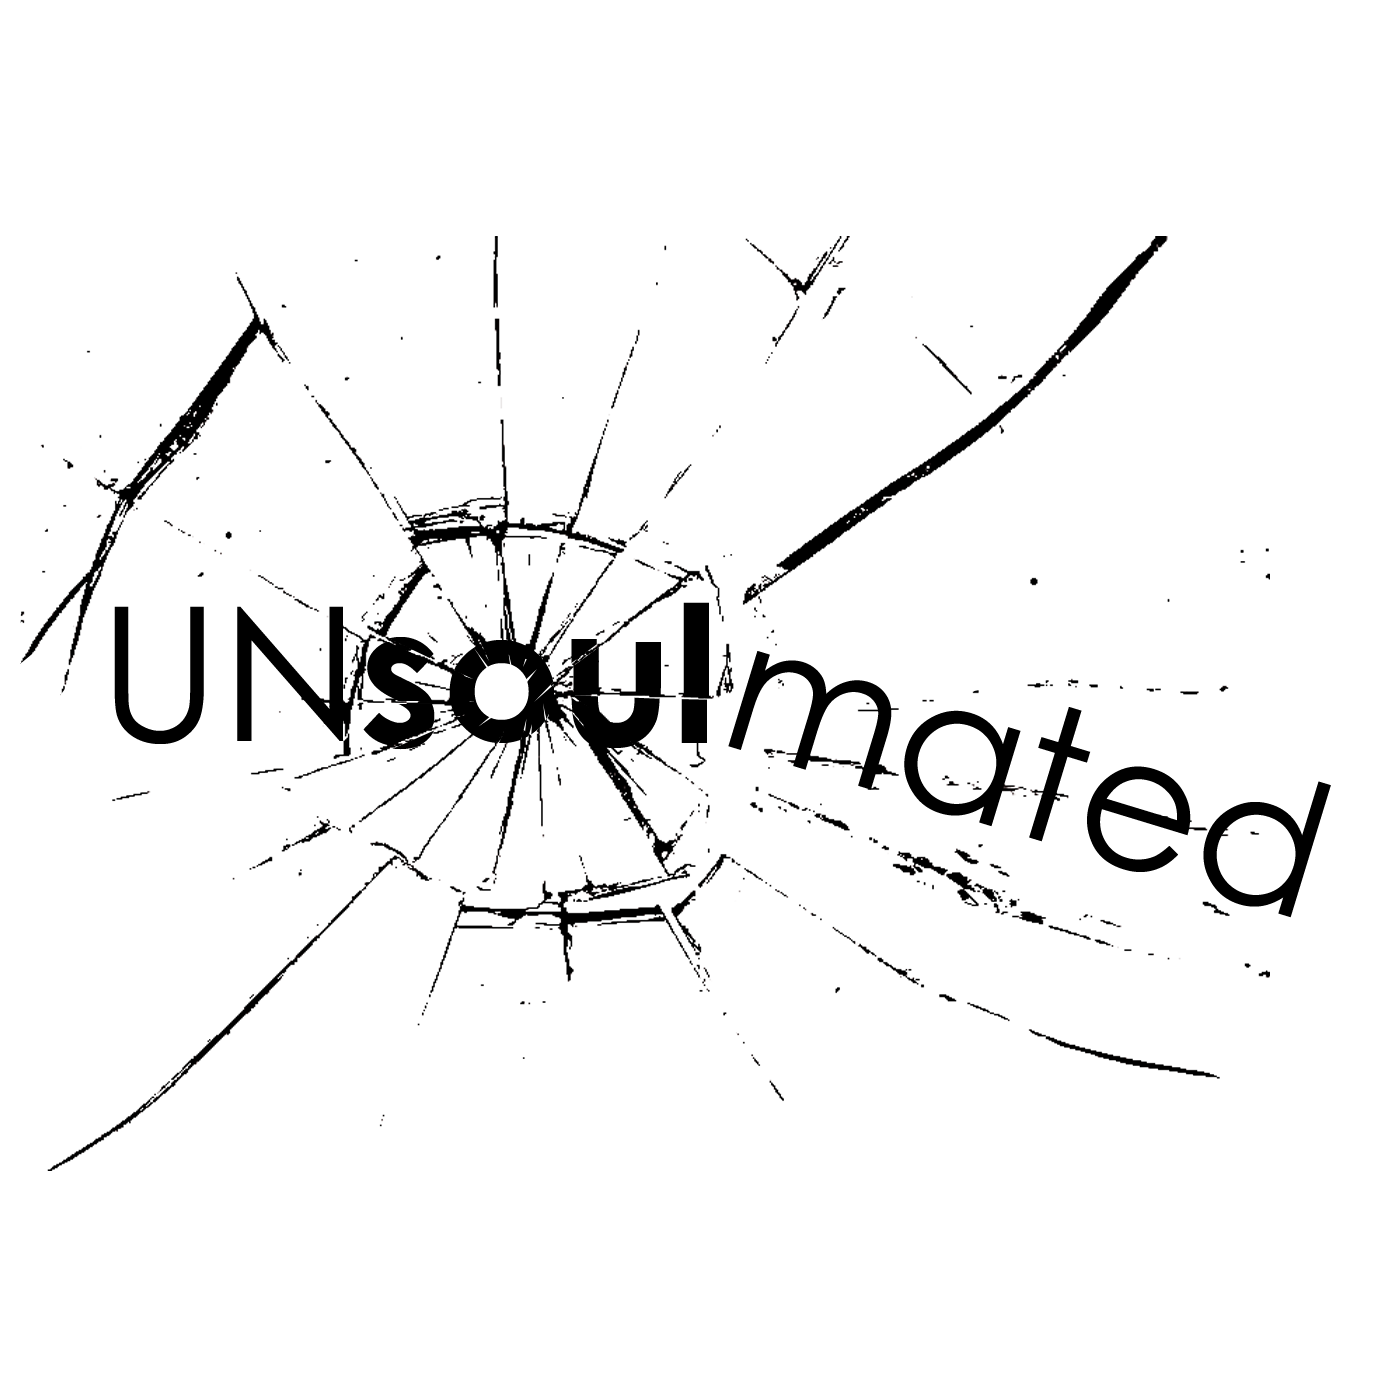 unsoulmated.com